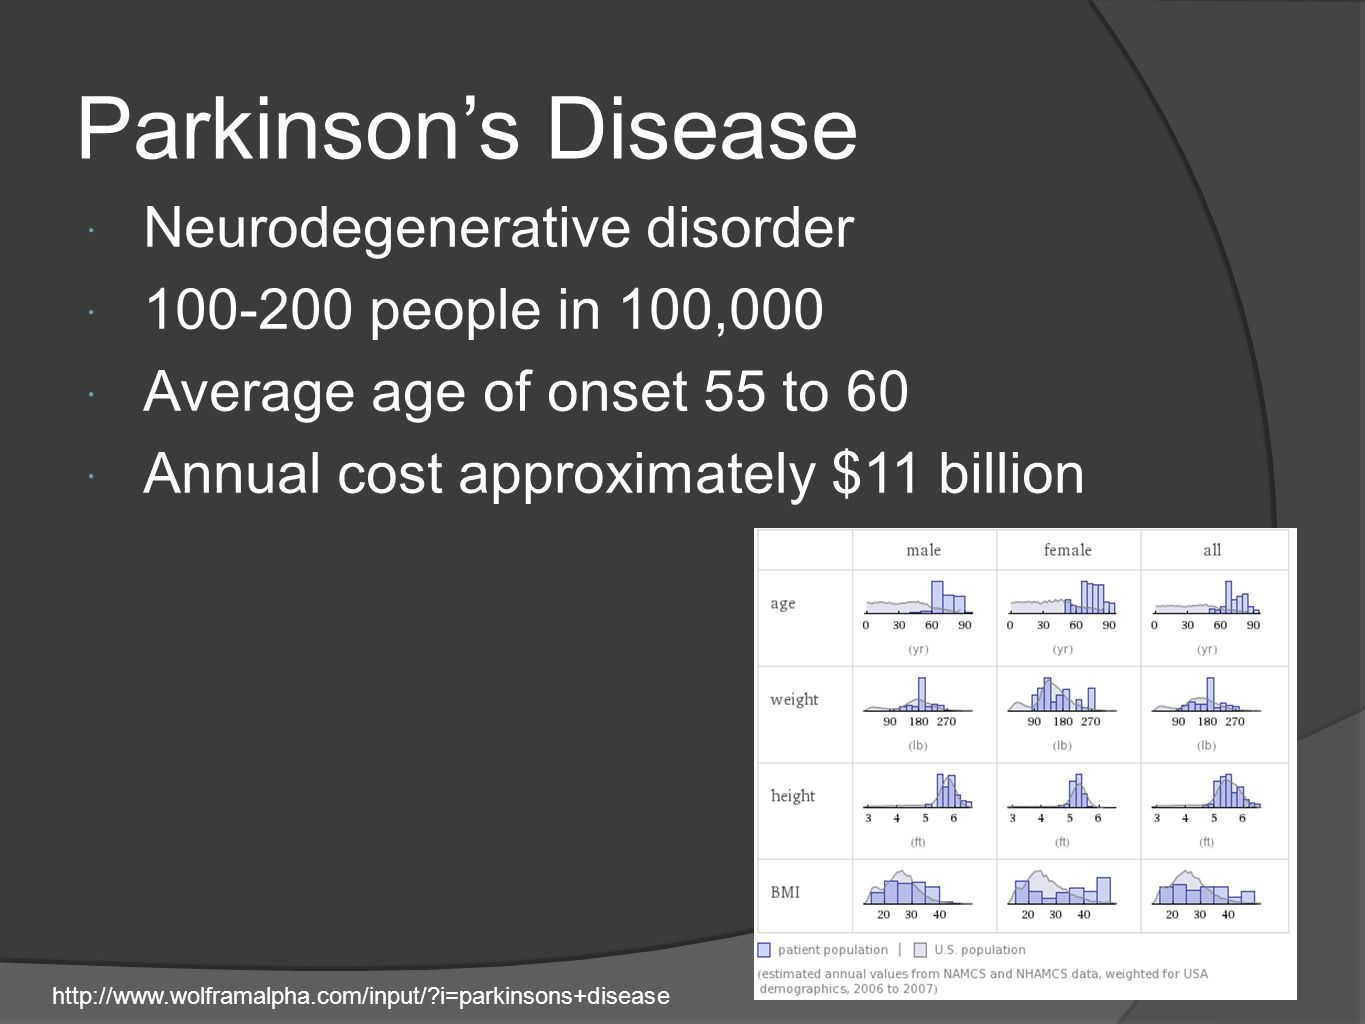 Parkinsons Disease Neurodegenerative disorder 100-200 people in 100,000 Average age of onset 55 to 60 Annual cost approximately $11 billion http://use